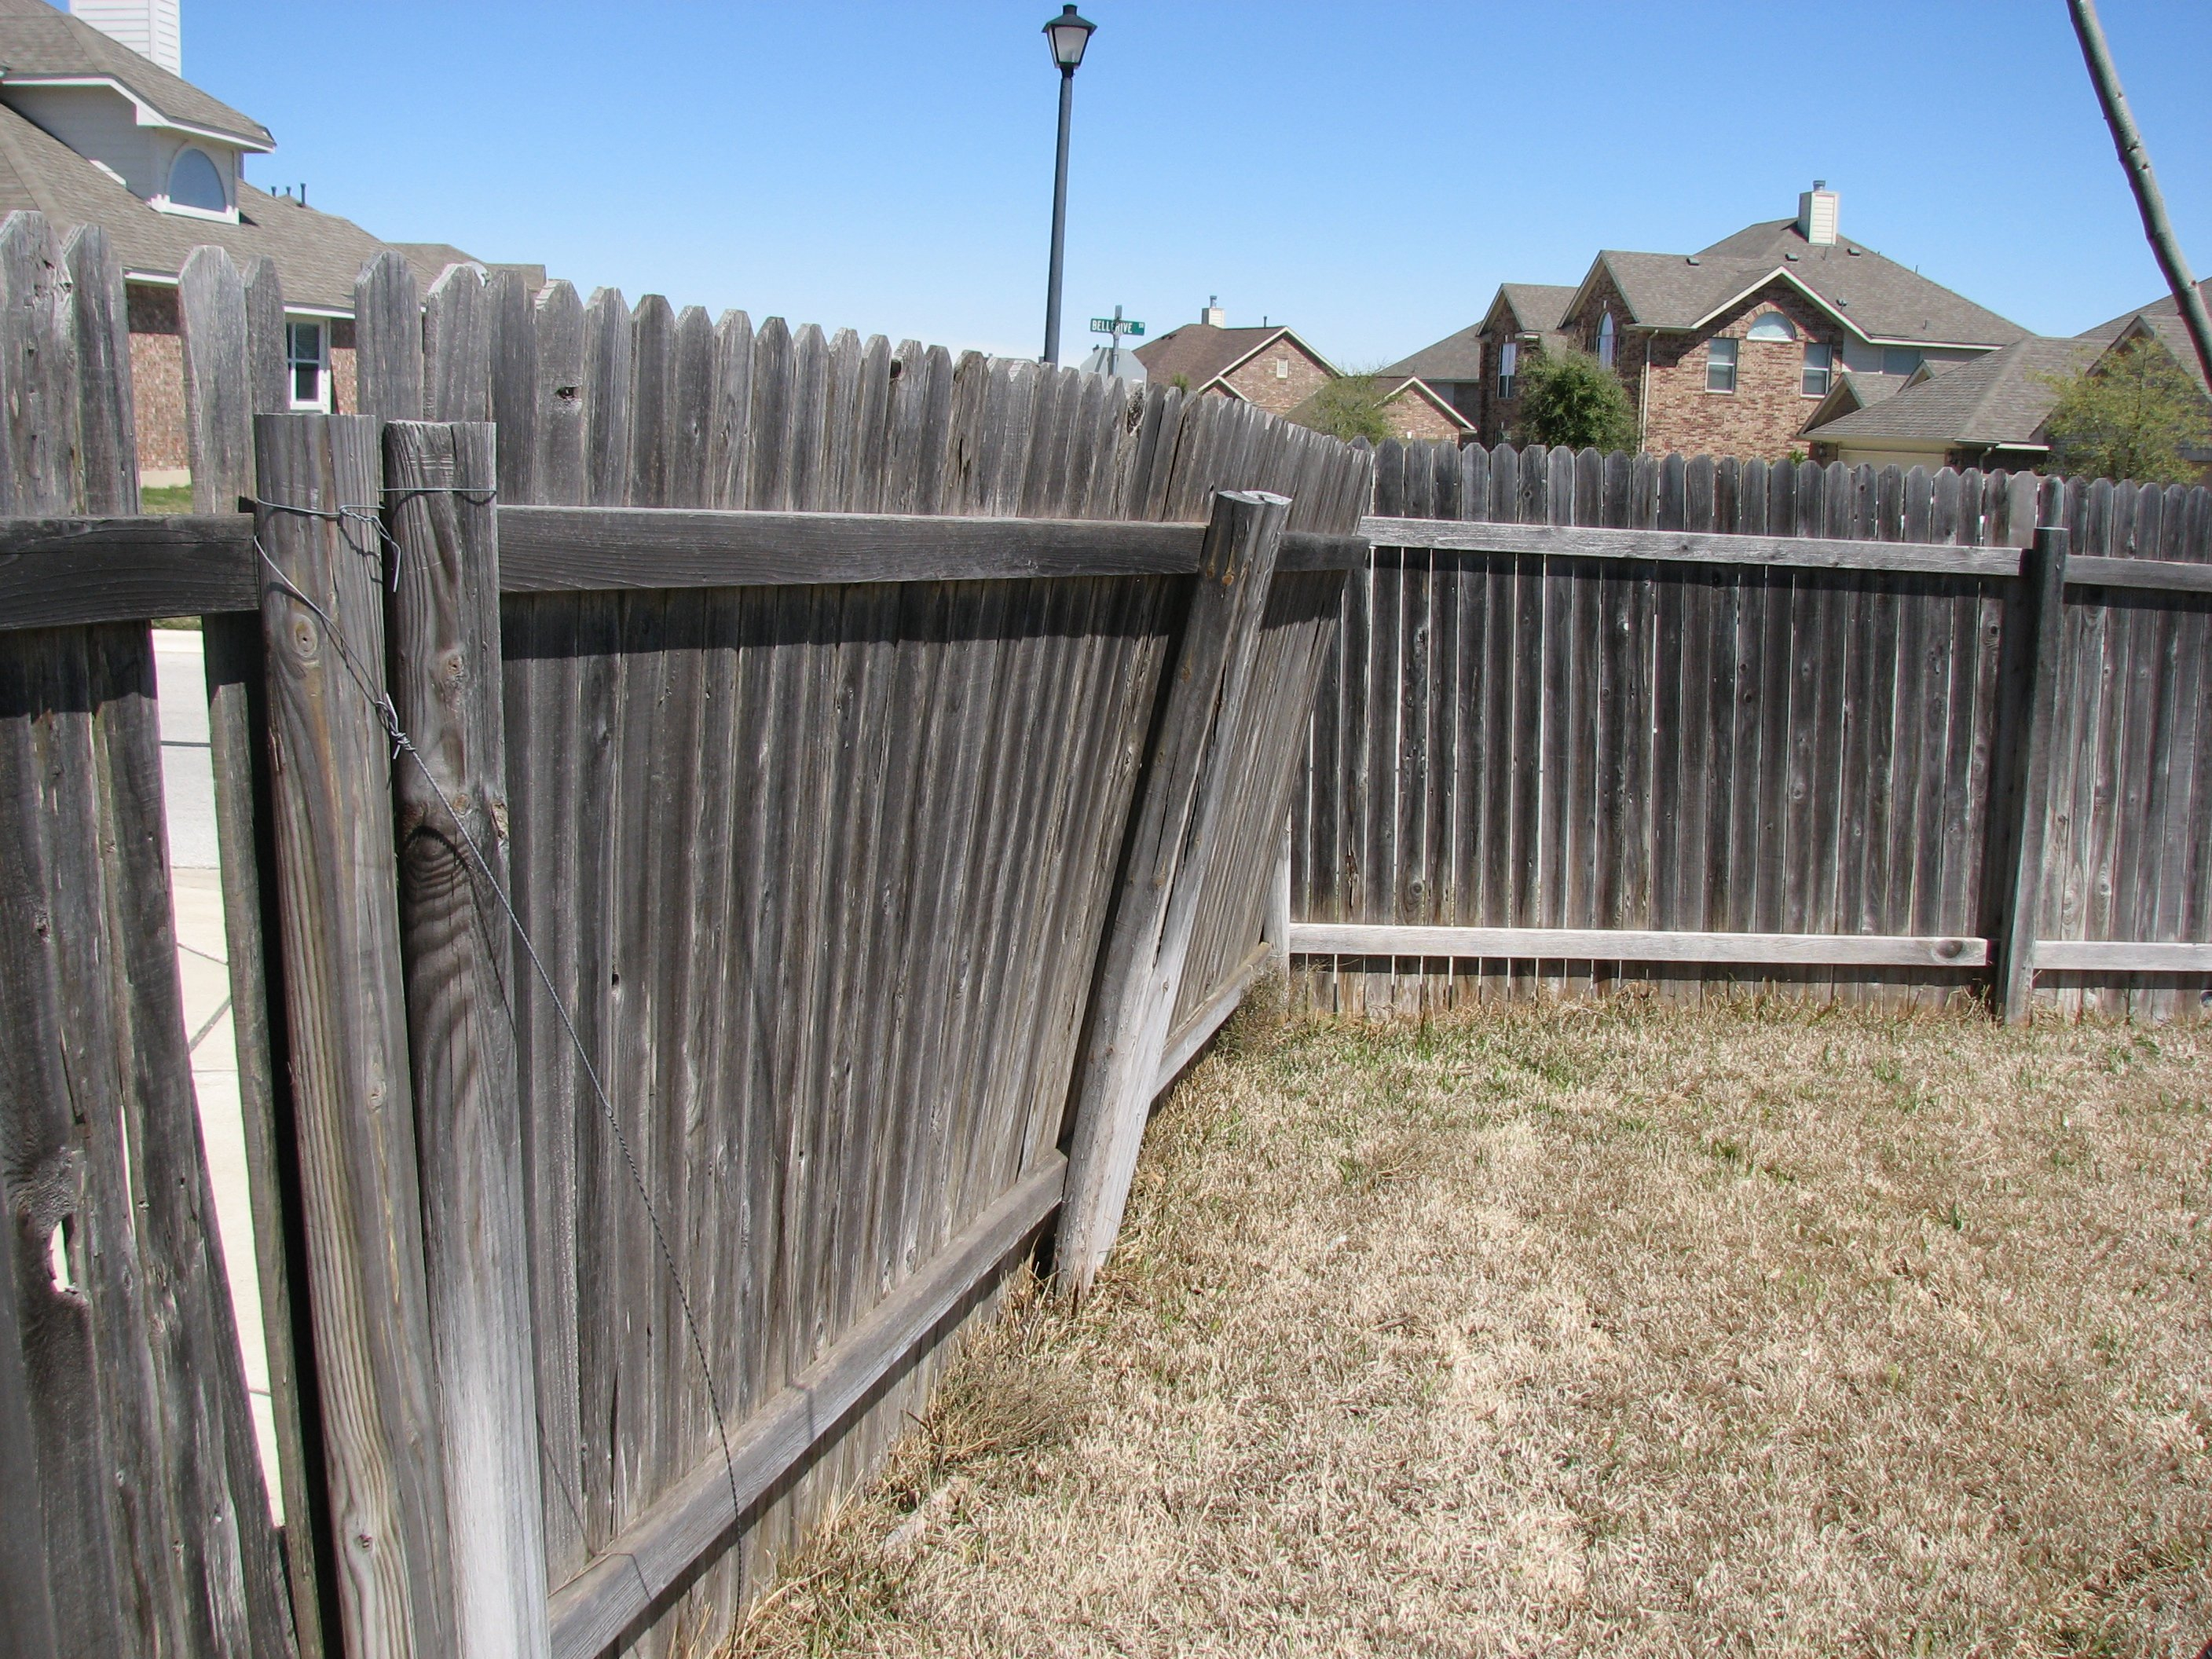 Fixing Wooden Fence Posts To Concrete • Fences Design